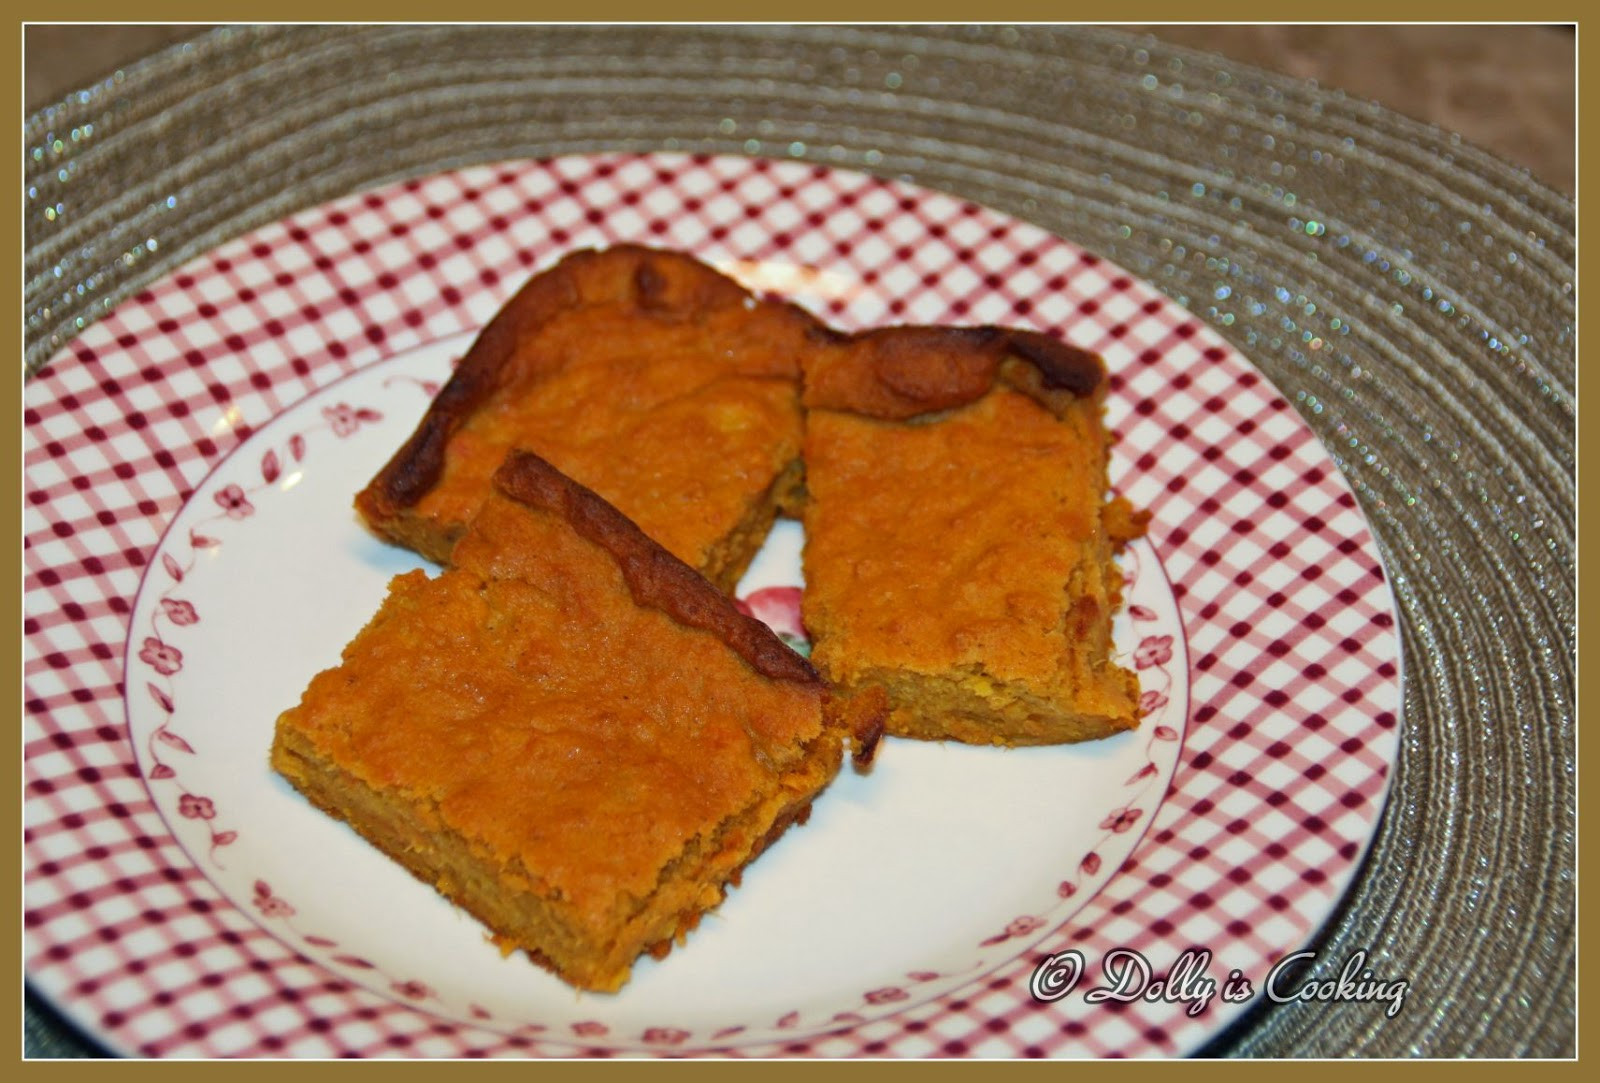 Dolly Is Cooking: Sweet Potato Pudding